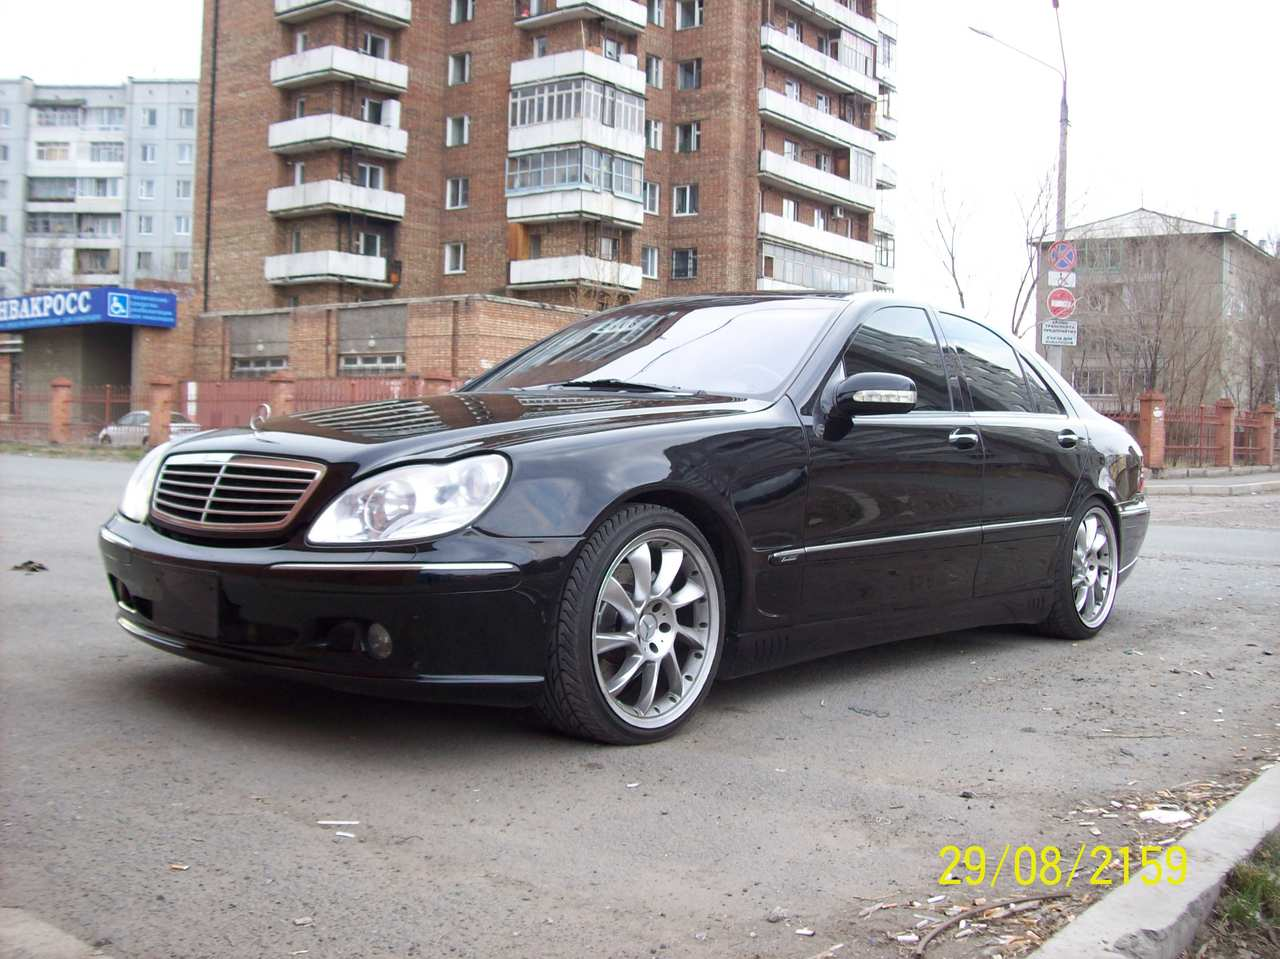 Used 2003 mercedes benz s class photos 5439cc gasoline for Mercedes benz s500 2003